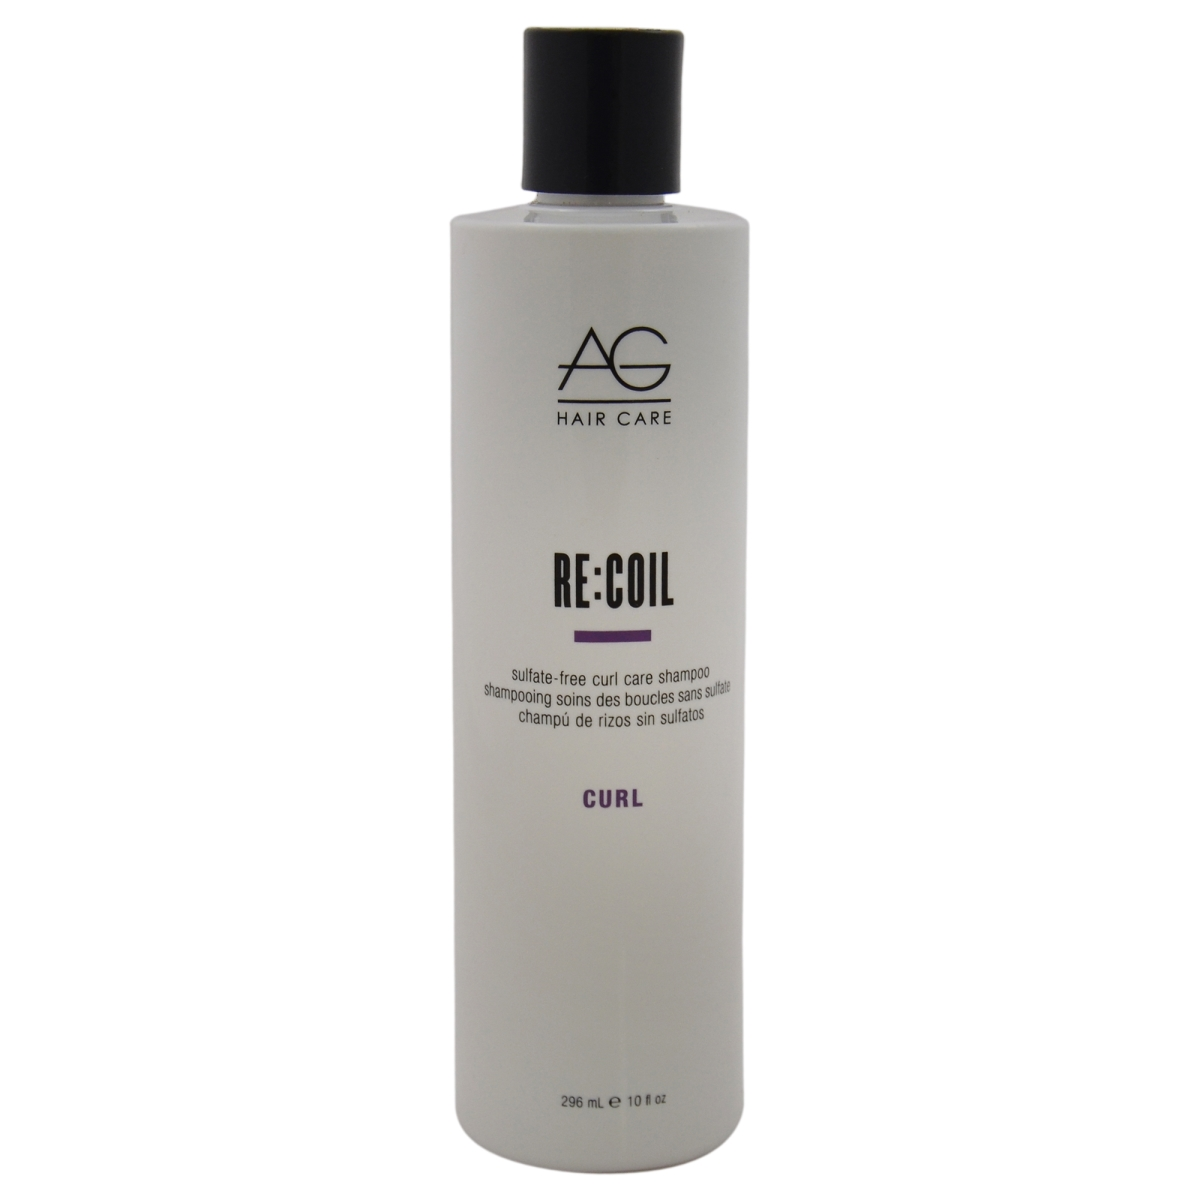 AG Hair Cosmetics U-HC-10738 Recoil Sulfate-Free Curl Care Shampoo for Unisex - 10 oz